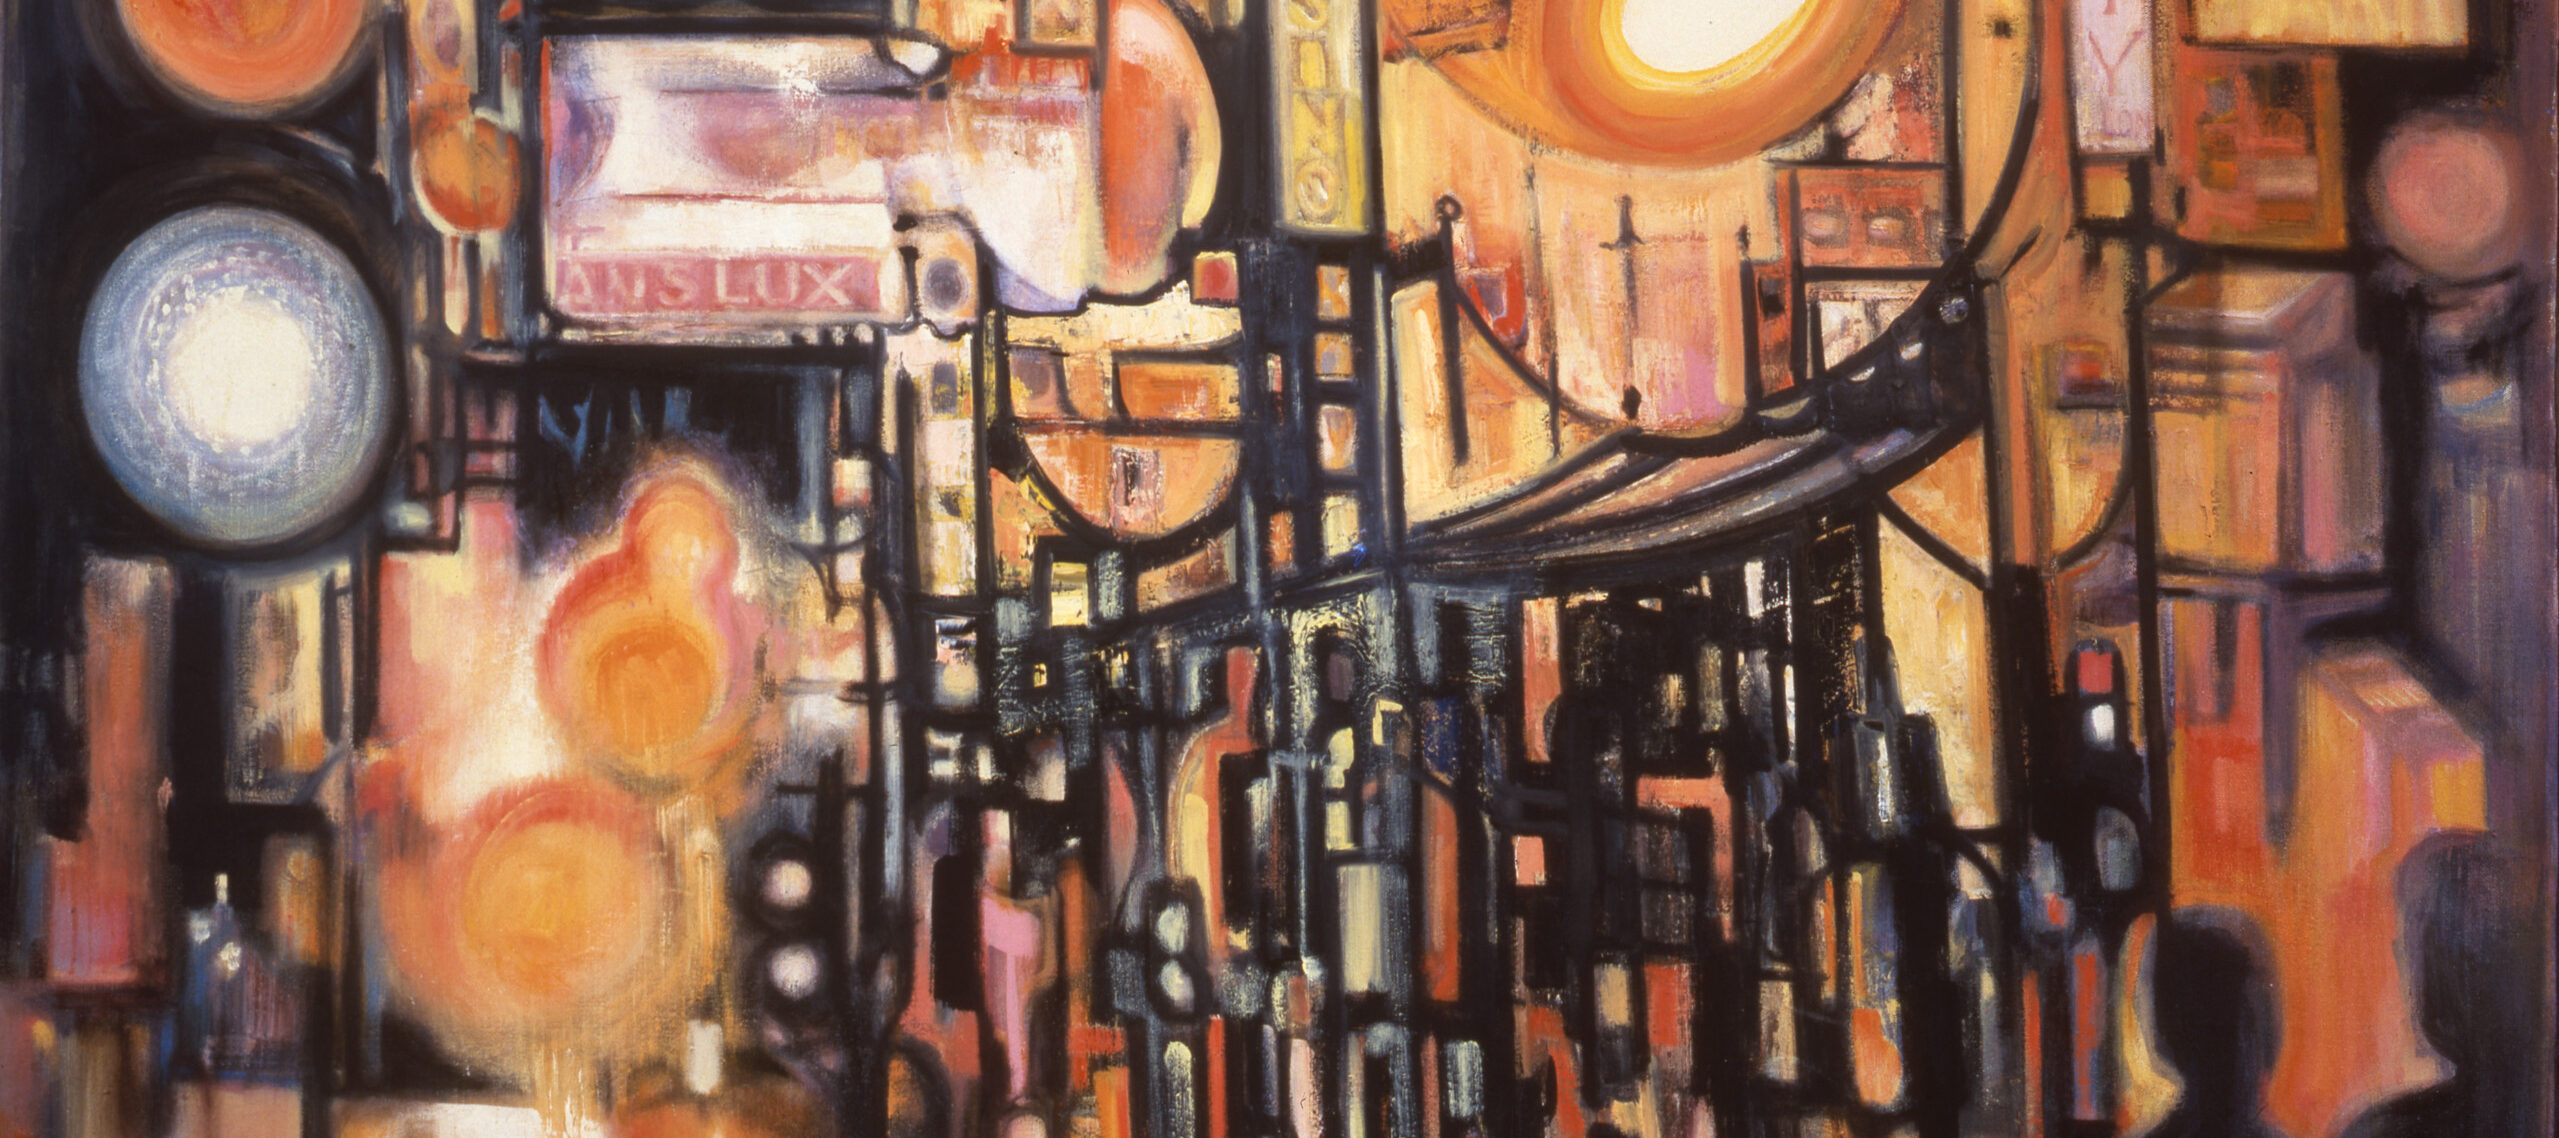 """Heavy black lines along with circles and ovals rendered in hot hues of orange and yellow evoke urban architecture and the glare of streetlights in an abstract painting. Two shadowy figures occupy the lower right, and legible signs include """"Translux,"""" """"St. H NW,"""" and """"Casino."""""""